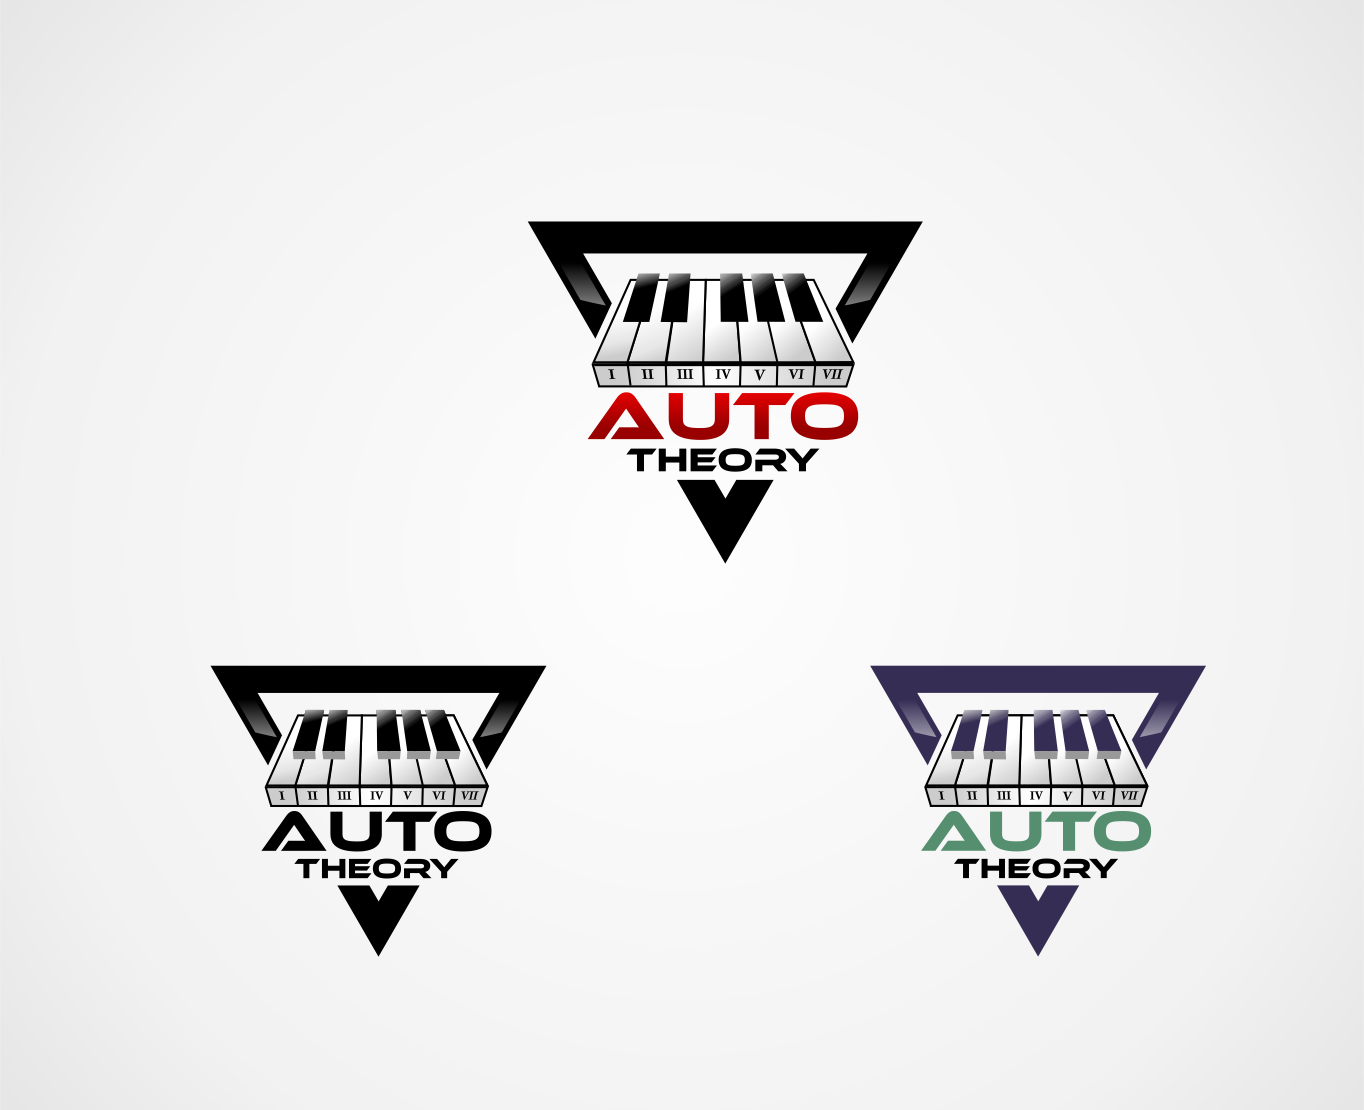 New logo wanted for AutoTheory